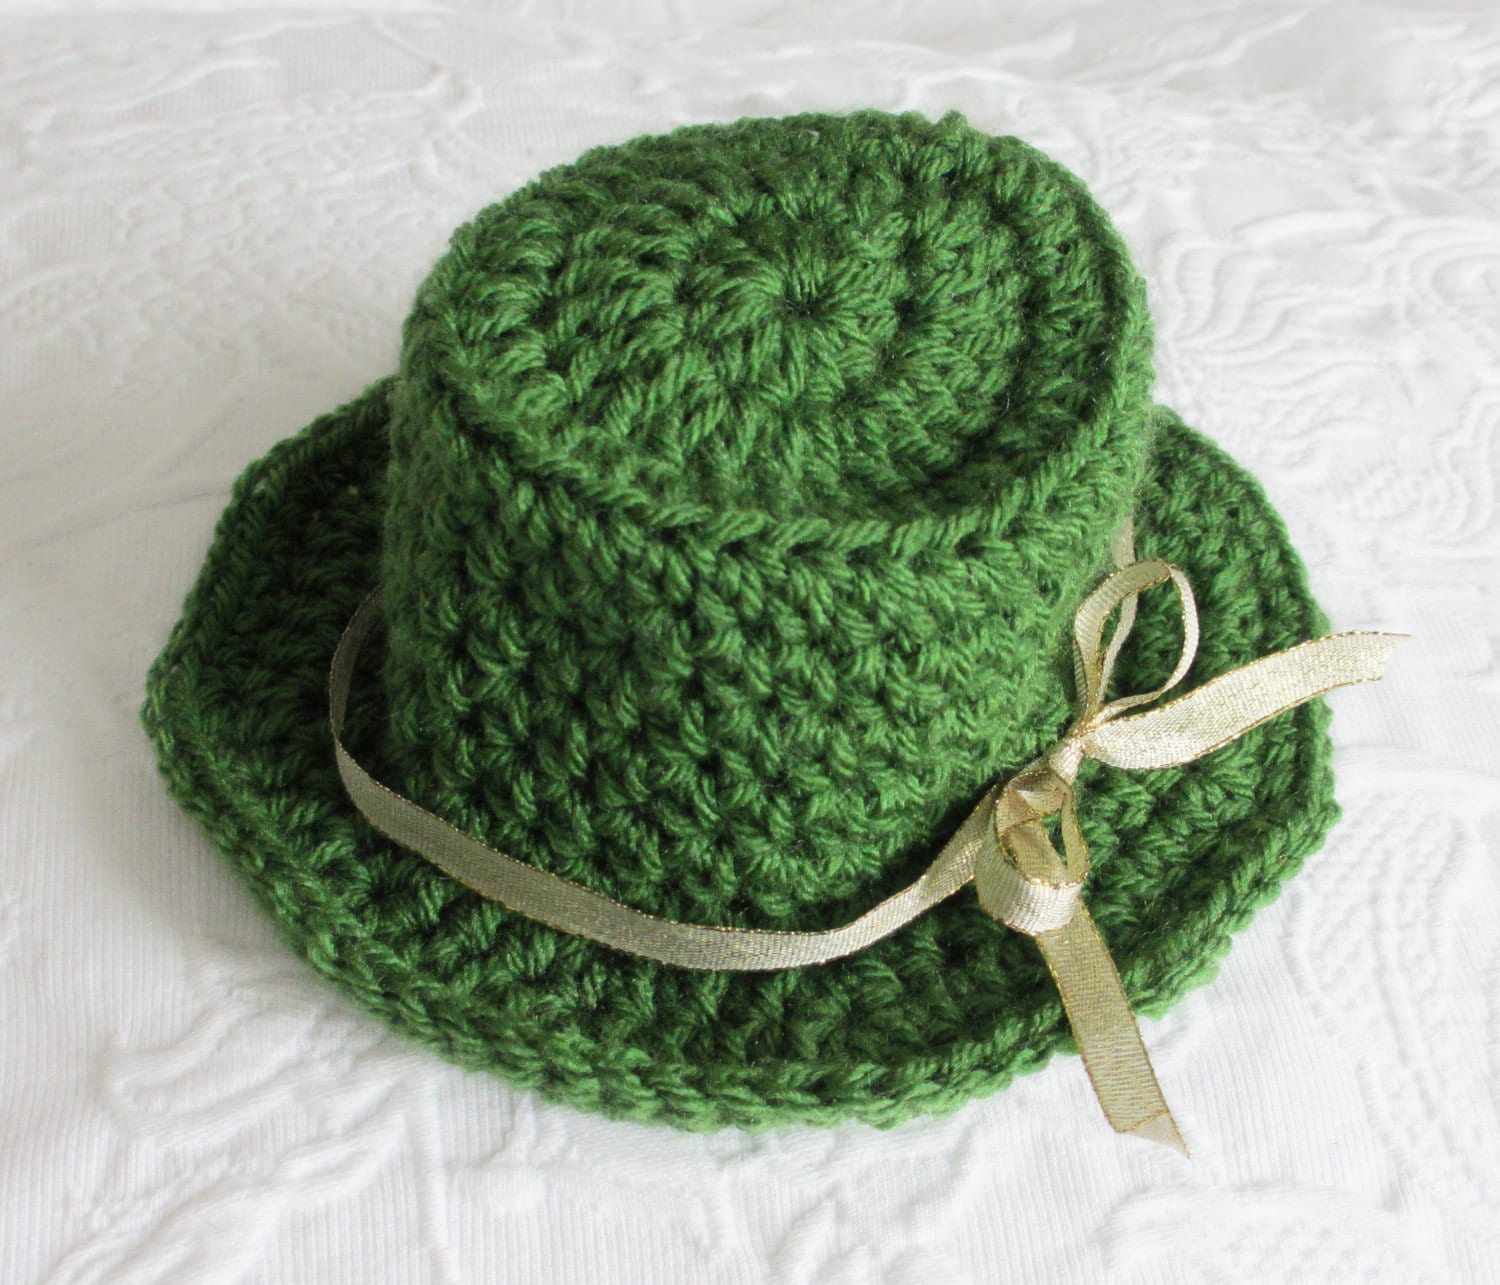 Crochet Pattern Leprechaun Hat : Items similar to Leprechaun Top Hat Crochet Pattern ...